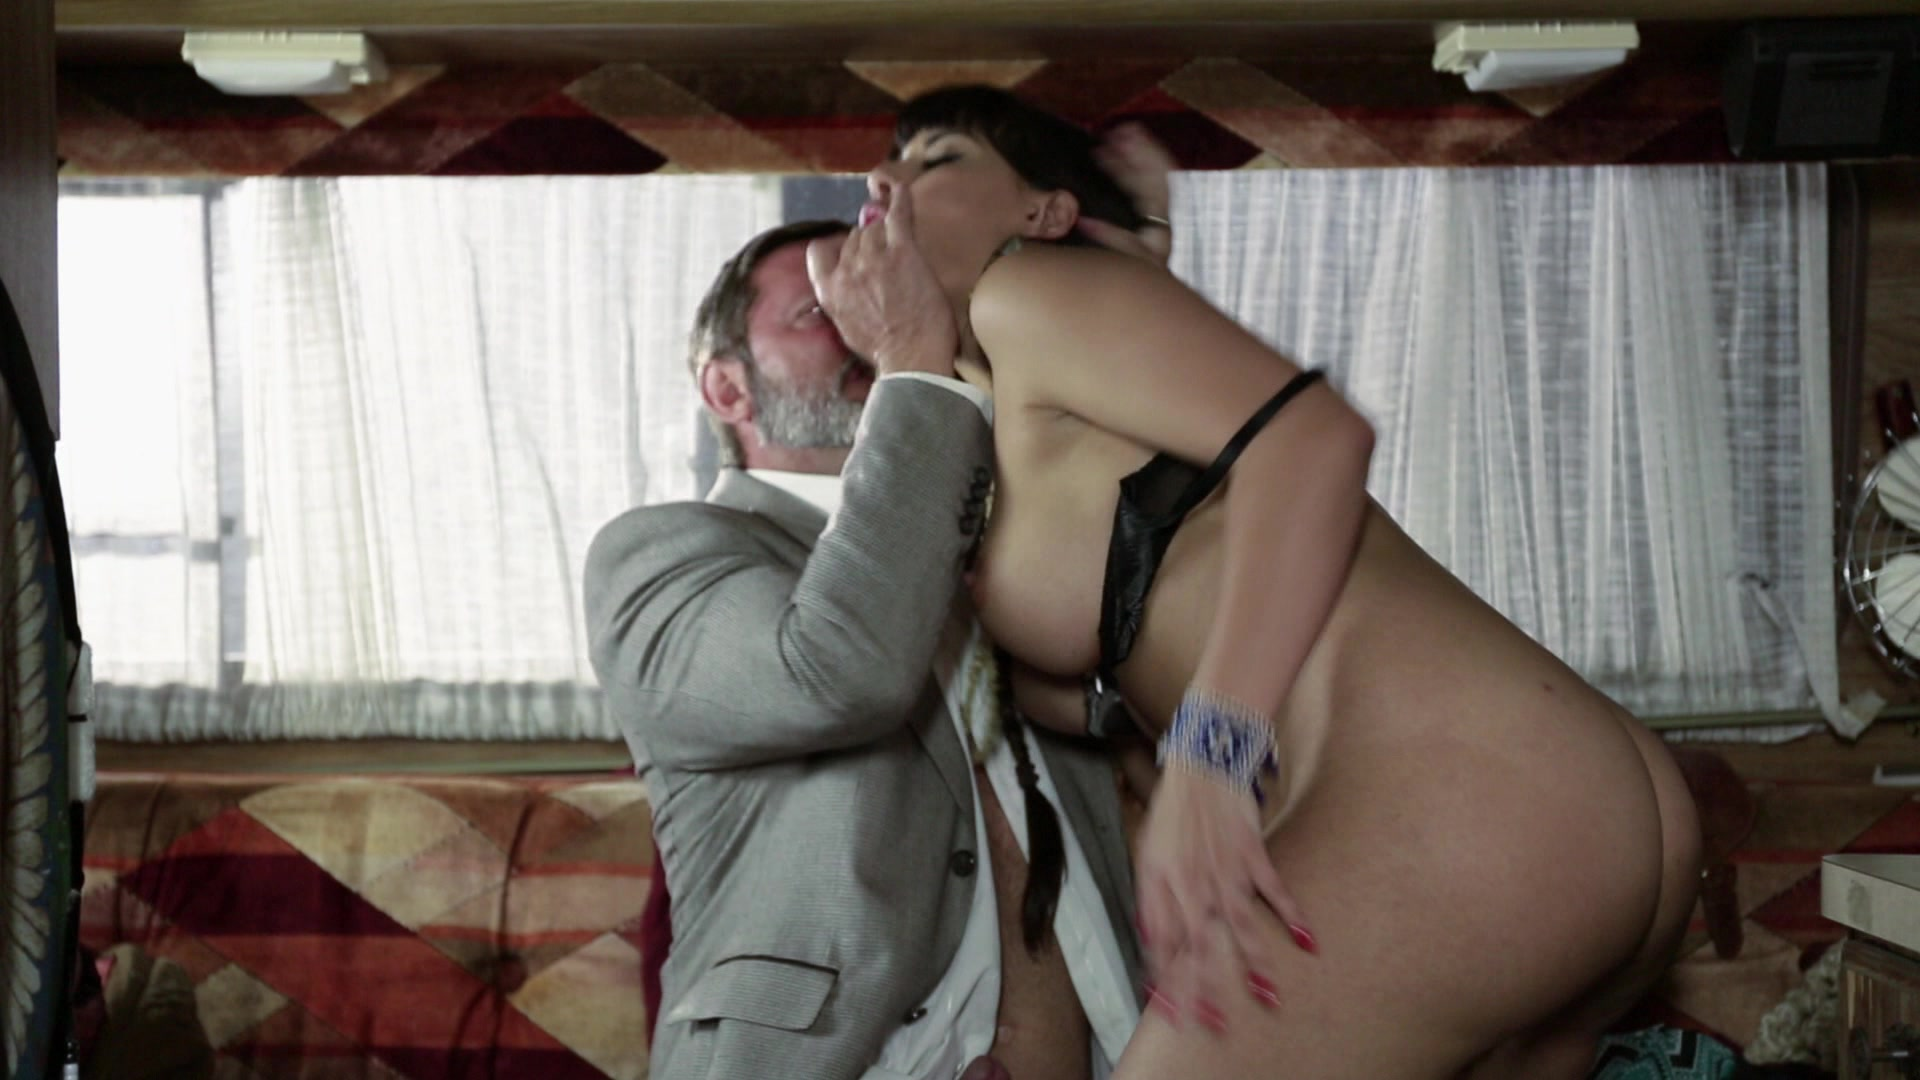 Scene with Brad Armstrong and Mercedes Carrera - image 13 out of 20